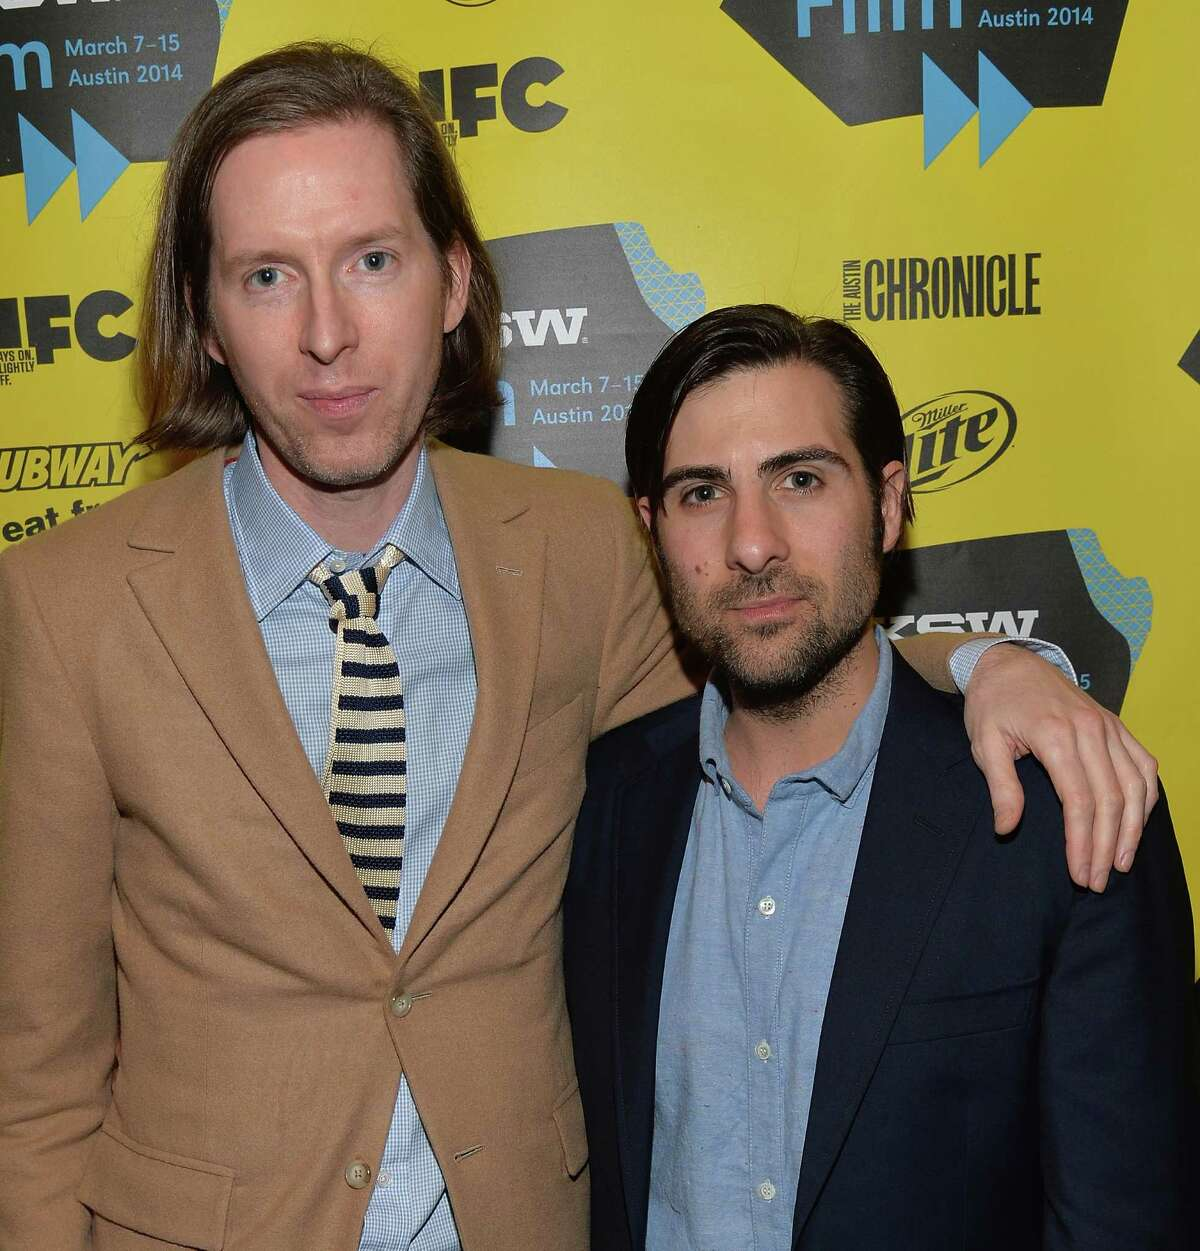 """Director Wes Anderson, who helmed movies such as """"Rushmore,"""" """"The Royal Tenenbaums"""" and """"Fantastic Mr. Fox,"""" honed some of his quirky style at UT's film school.Pictured, Anderson (L) and actor Jason Schwartzman, at the screening of """"Grand Budapest Hotel"""" during the 2014 SXSW Music, Film + Interactive Festival at the Paramount Theatre on March 10, 2014 in Austin, Texas."""